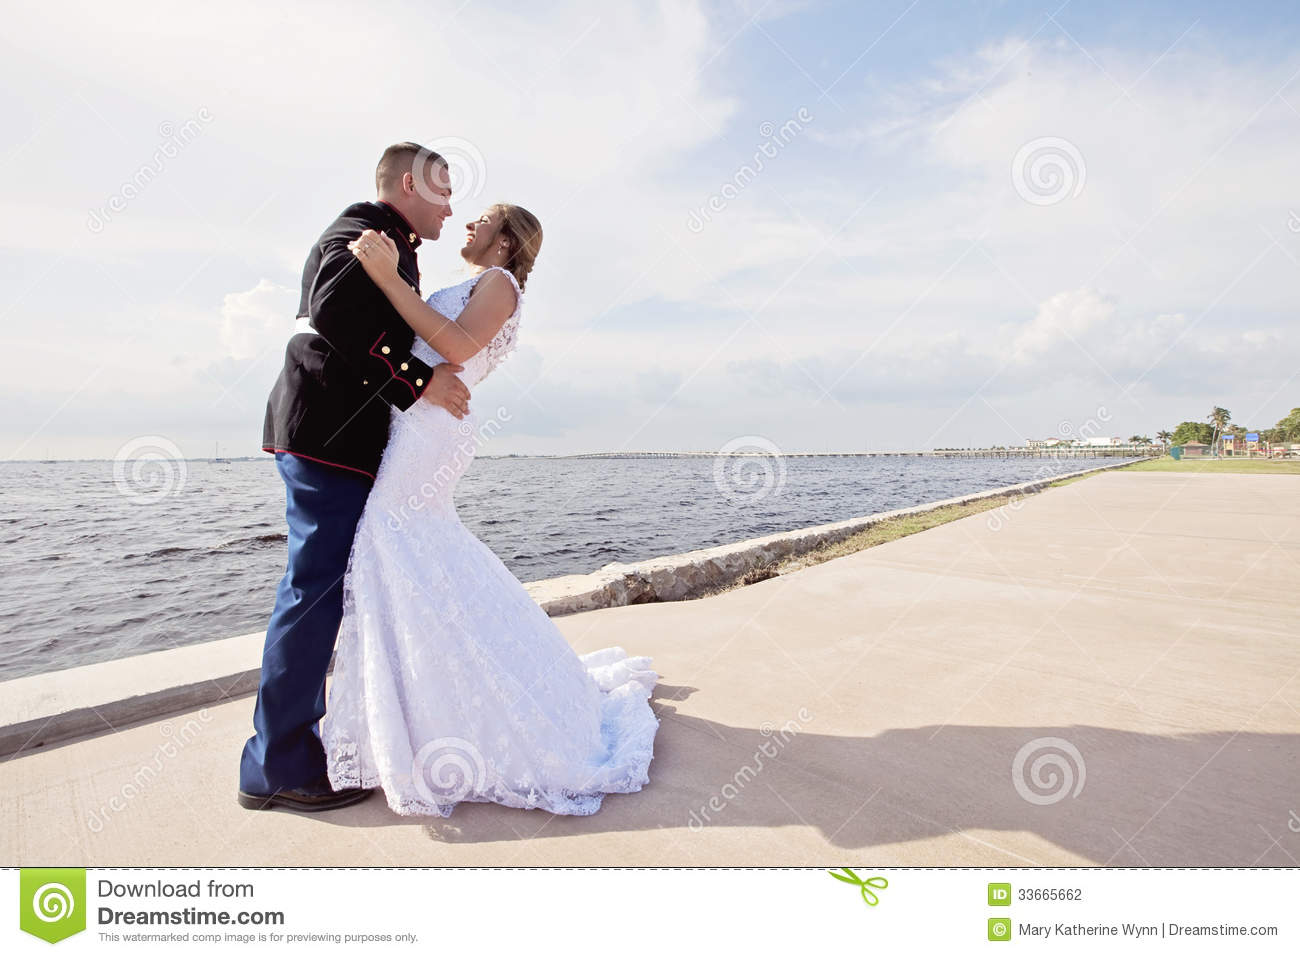 3bcb882e407847 A military groom in uniform holding his bride on a pier by the water.